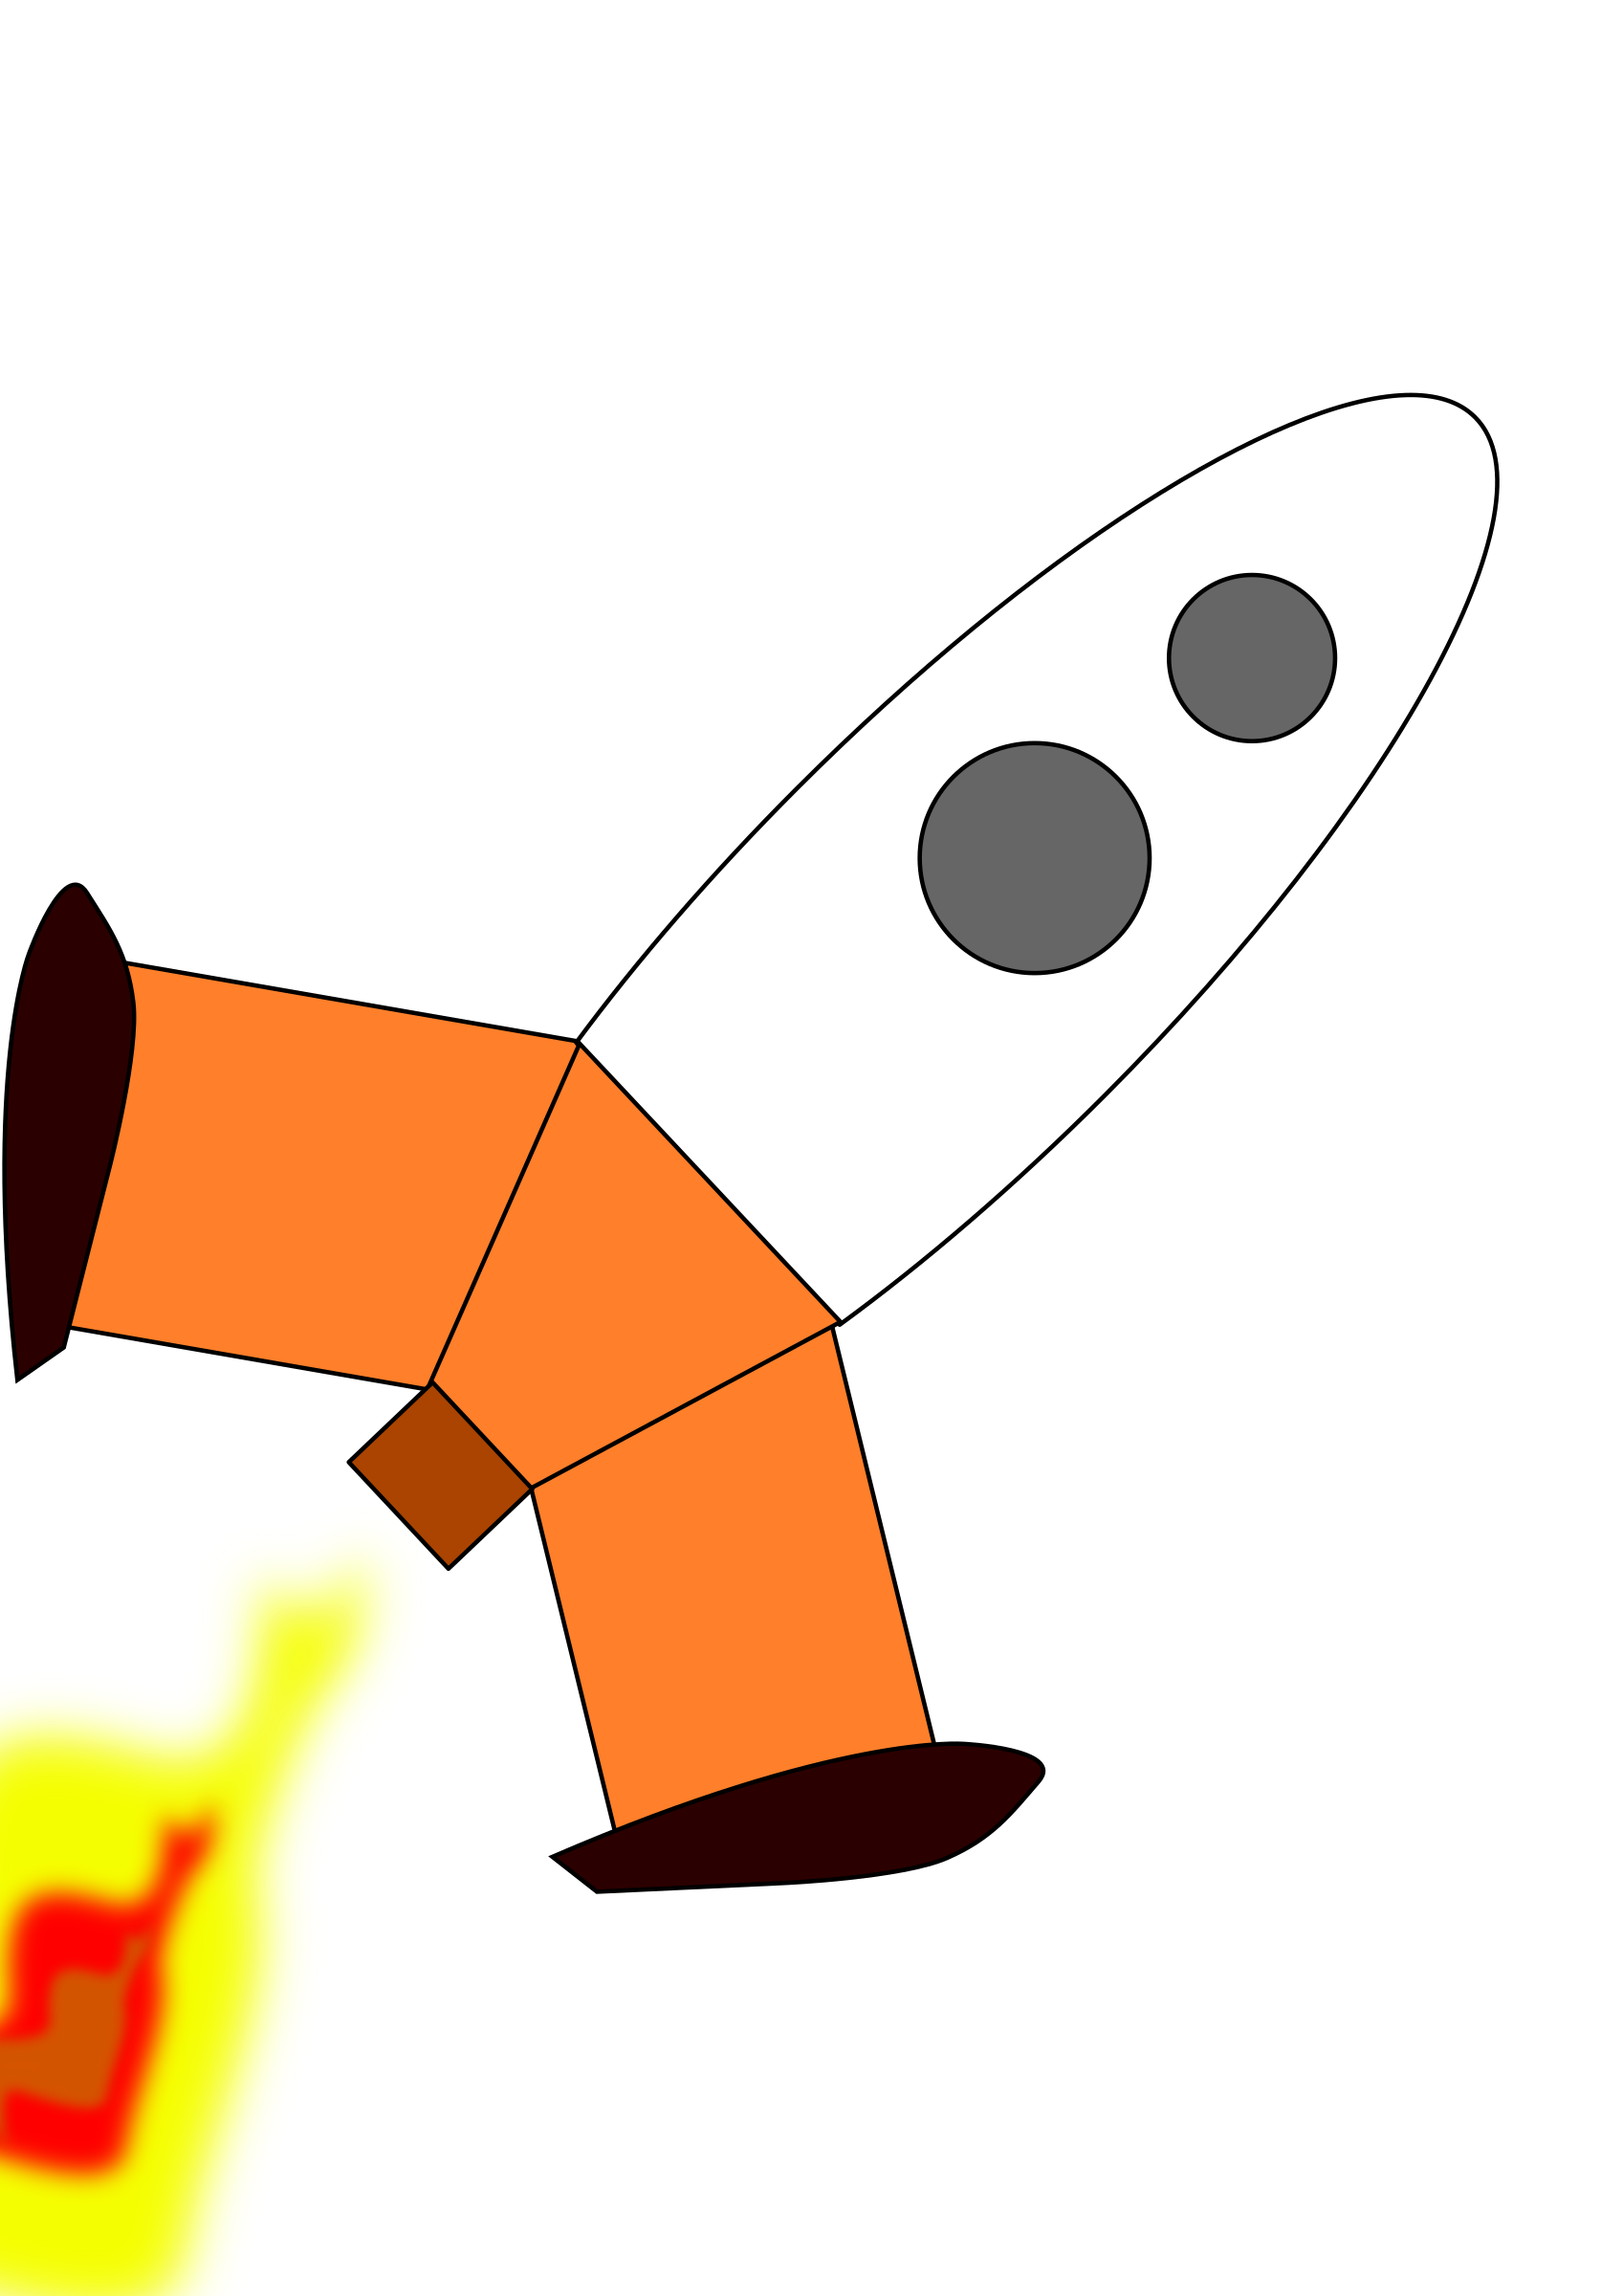 rocket ship by evelyn23